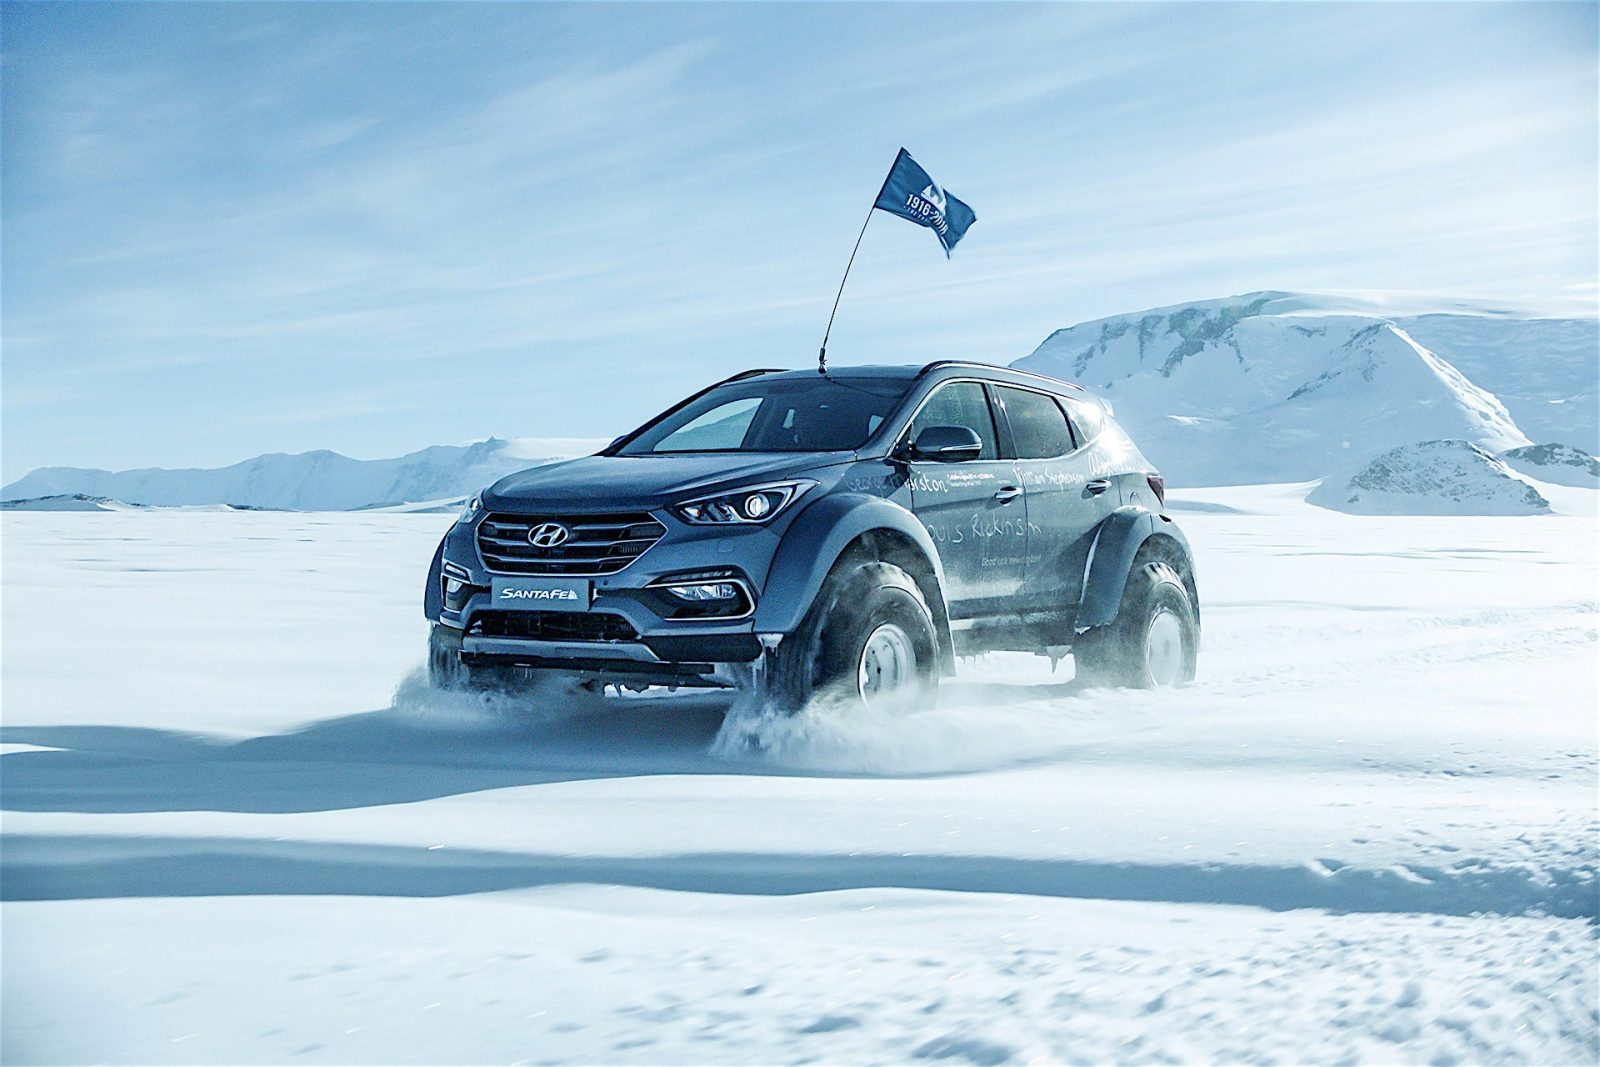 hyundai-santa-fe-conquers-the-antarctic-driven-by-great-grandson-of-sir-ernest-s_12